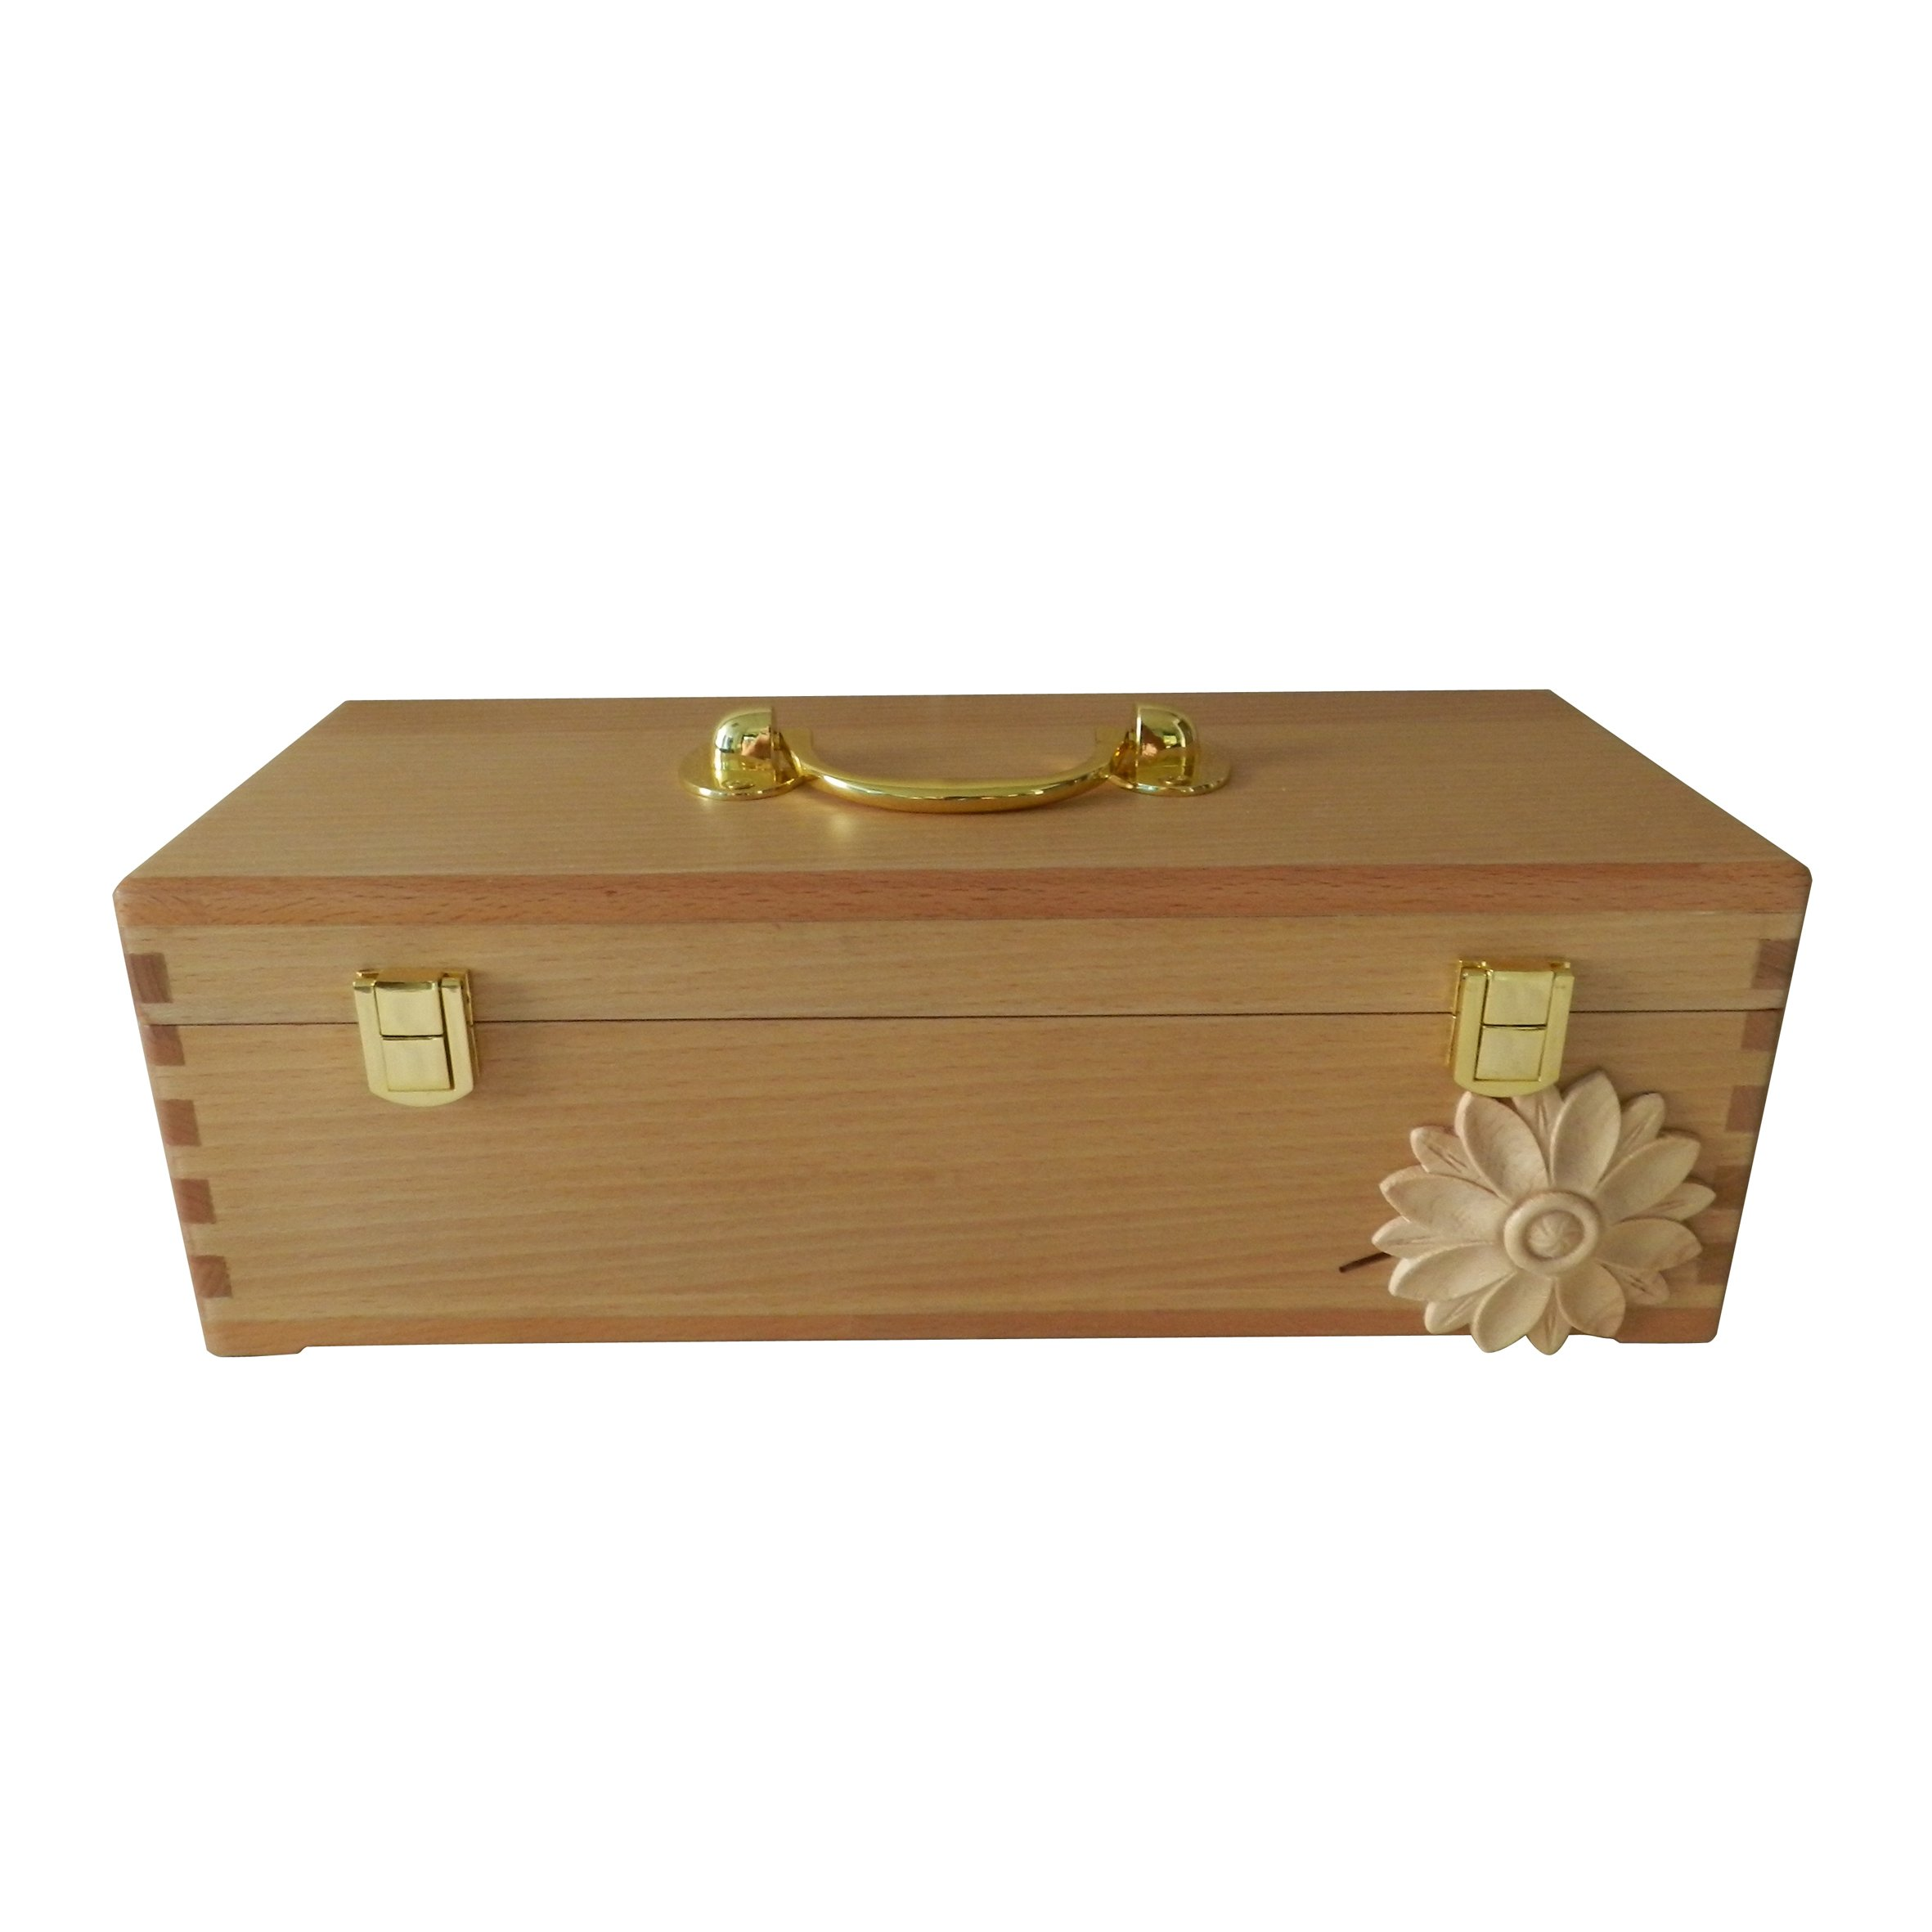 CVHOMEDECO. Beech Wood Essential Oils Storage Box & Carry Case with Brass Plated Steel Fittings and Engrave Flower Design. 14-1/2 X 5-1/2 X 4-3/4 Inch by CVHOMEDECO.